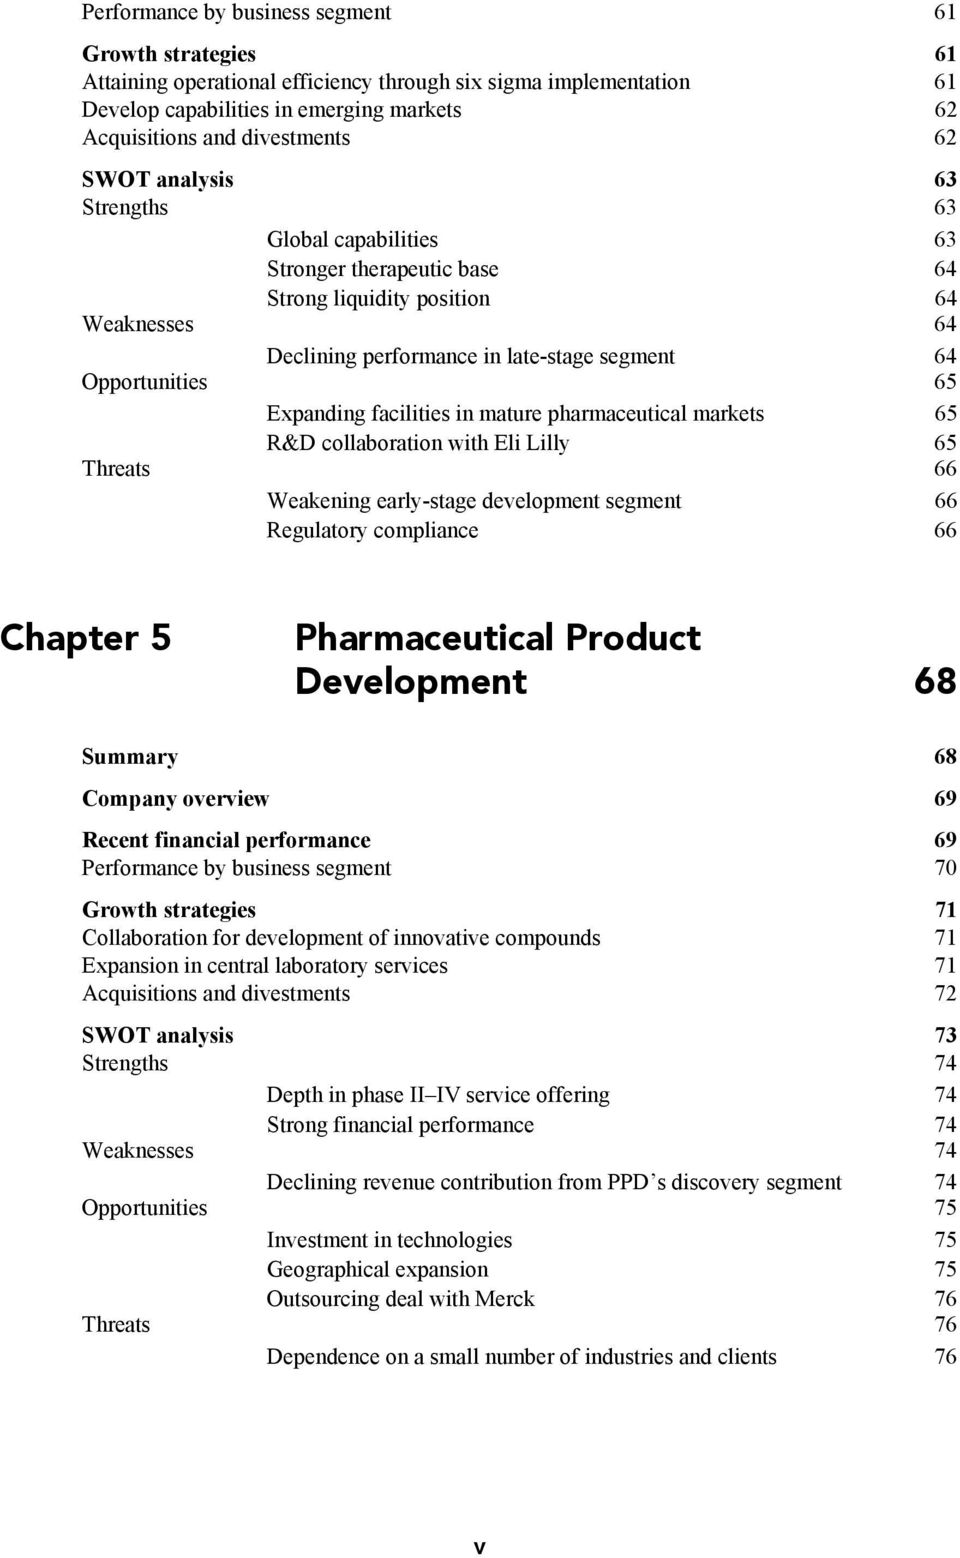 pharmaceutical markets 65 R&D collaboration with Eli Lilly 65 66 Weakening early-stage development segment 66 Regulatory compliance 66 Chapter 5 Pharmaceutical Product Development 68 Summary 68